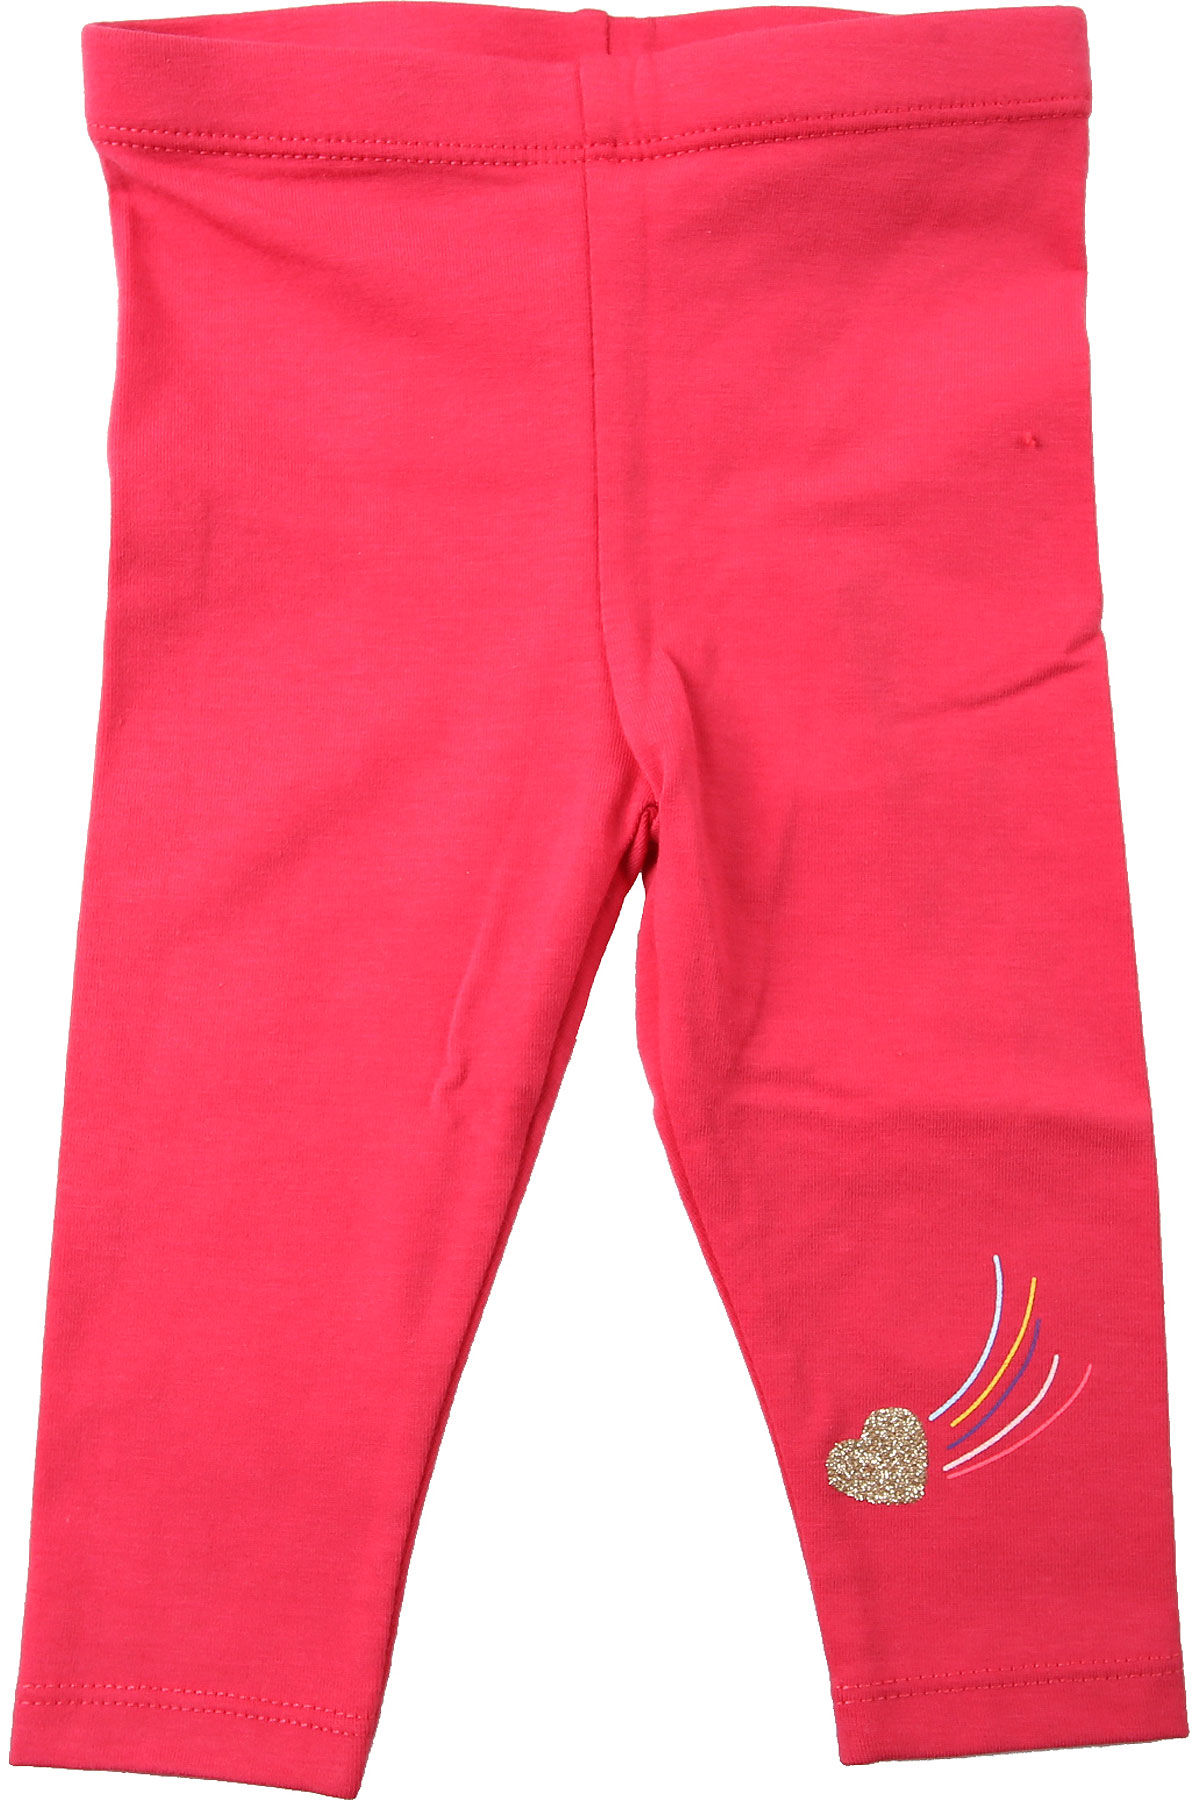 Billieblush Baby Pants for Girls On Sale, Fuchsia, polyester, 2019, 12M 18M 2Y 6M 9M